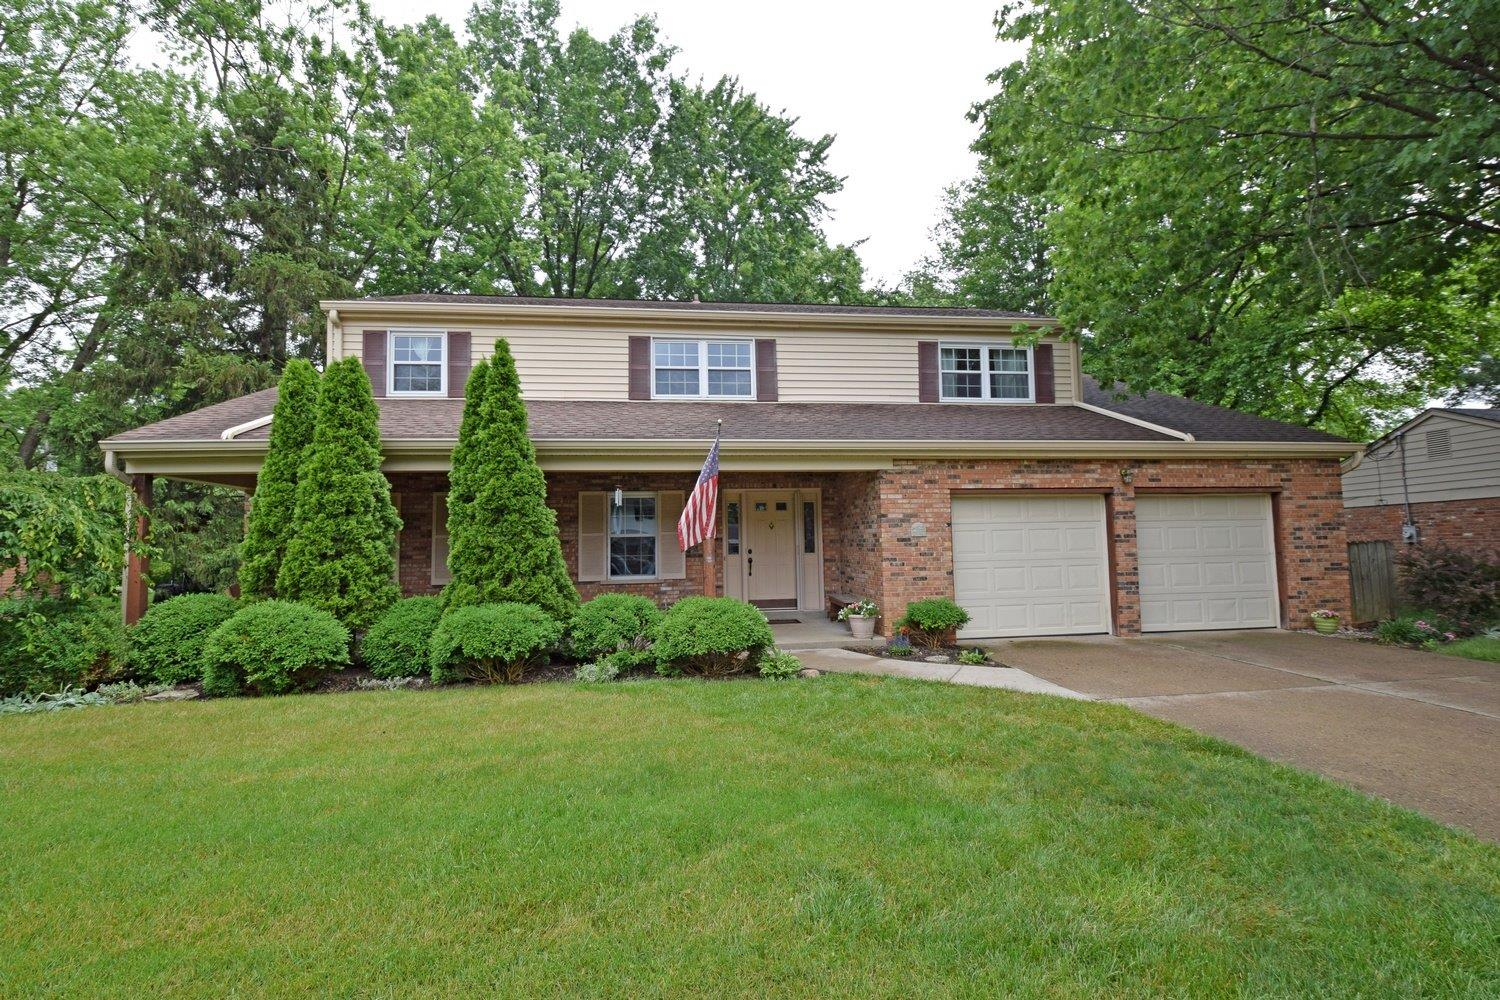 Photo 1 for 8080 Asbury Hills Dr Anderson Twp., OH 45255